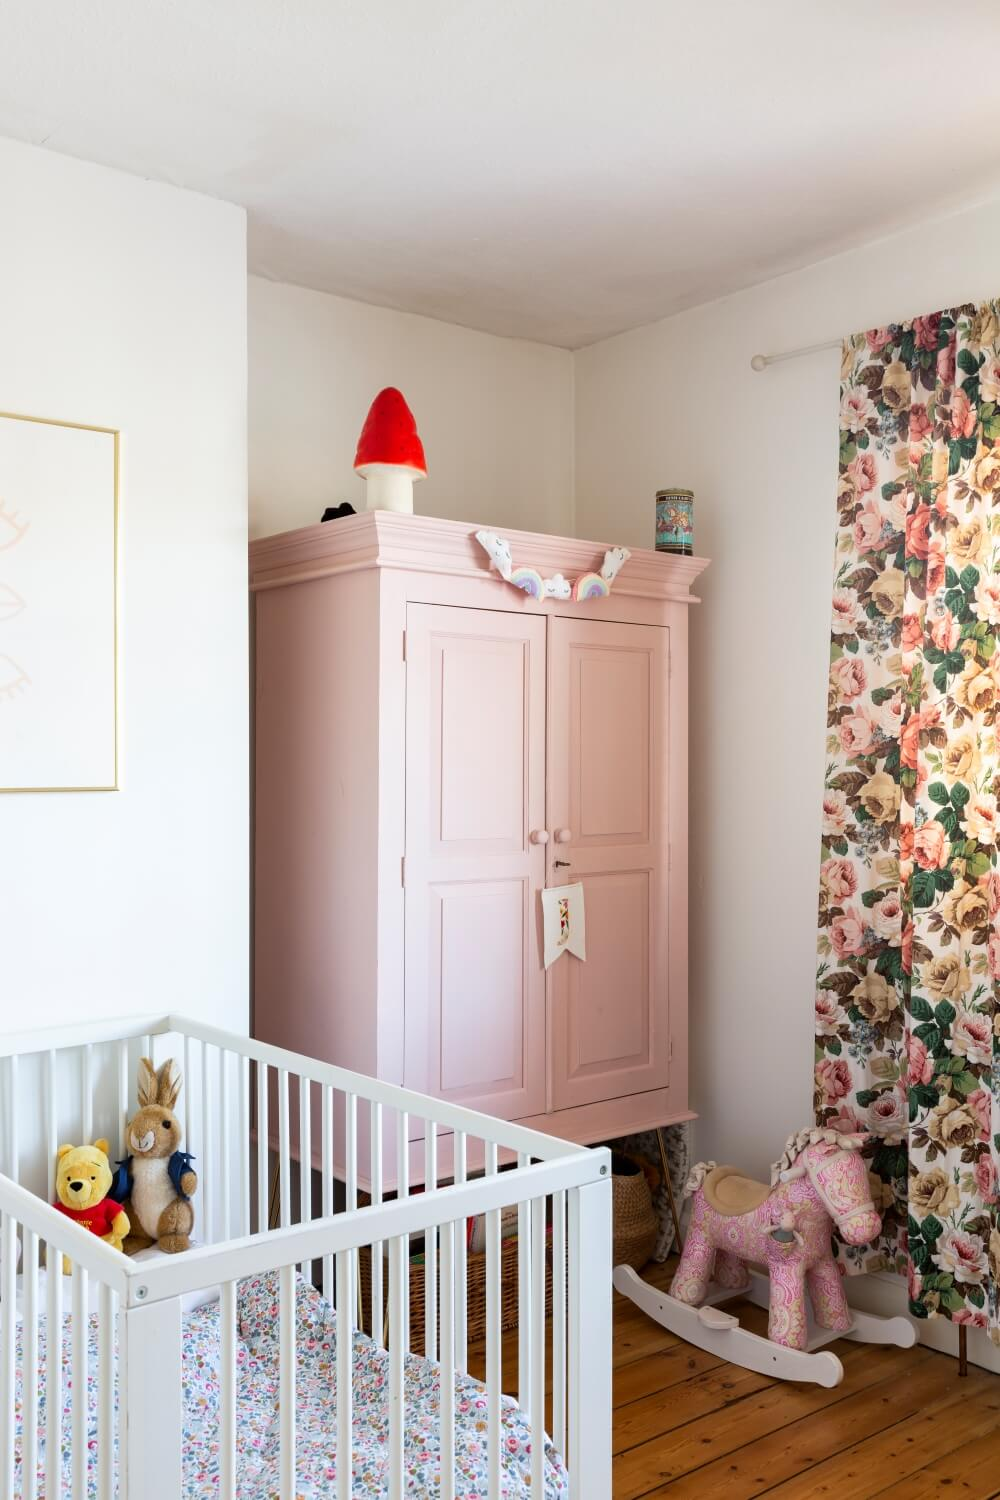 Decorate with Pink Home tour: Large vintage furniture painted a pink color with hairpin legs.